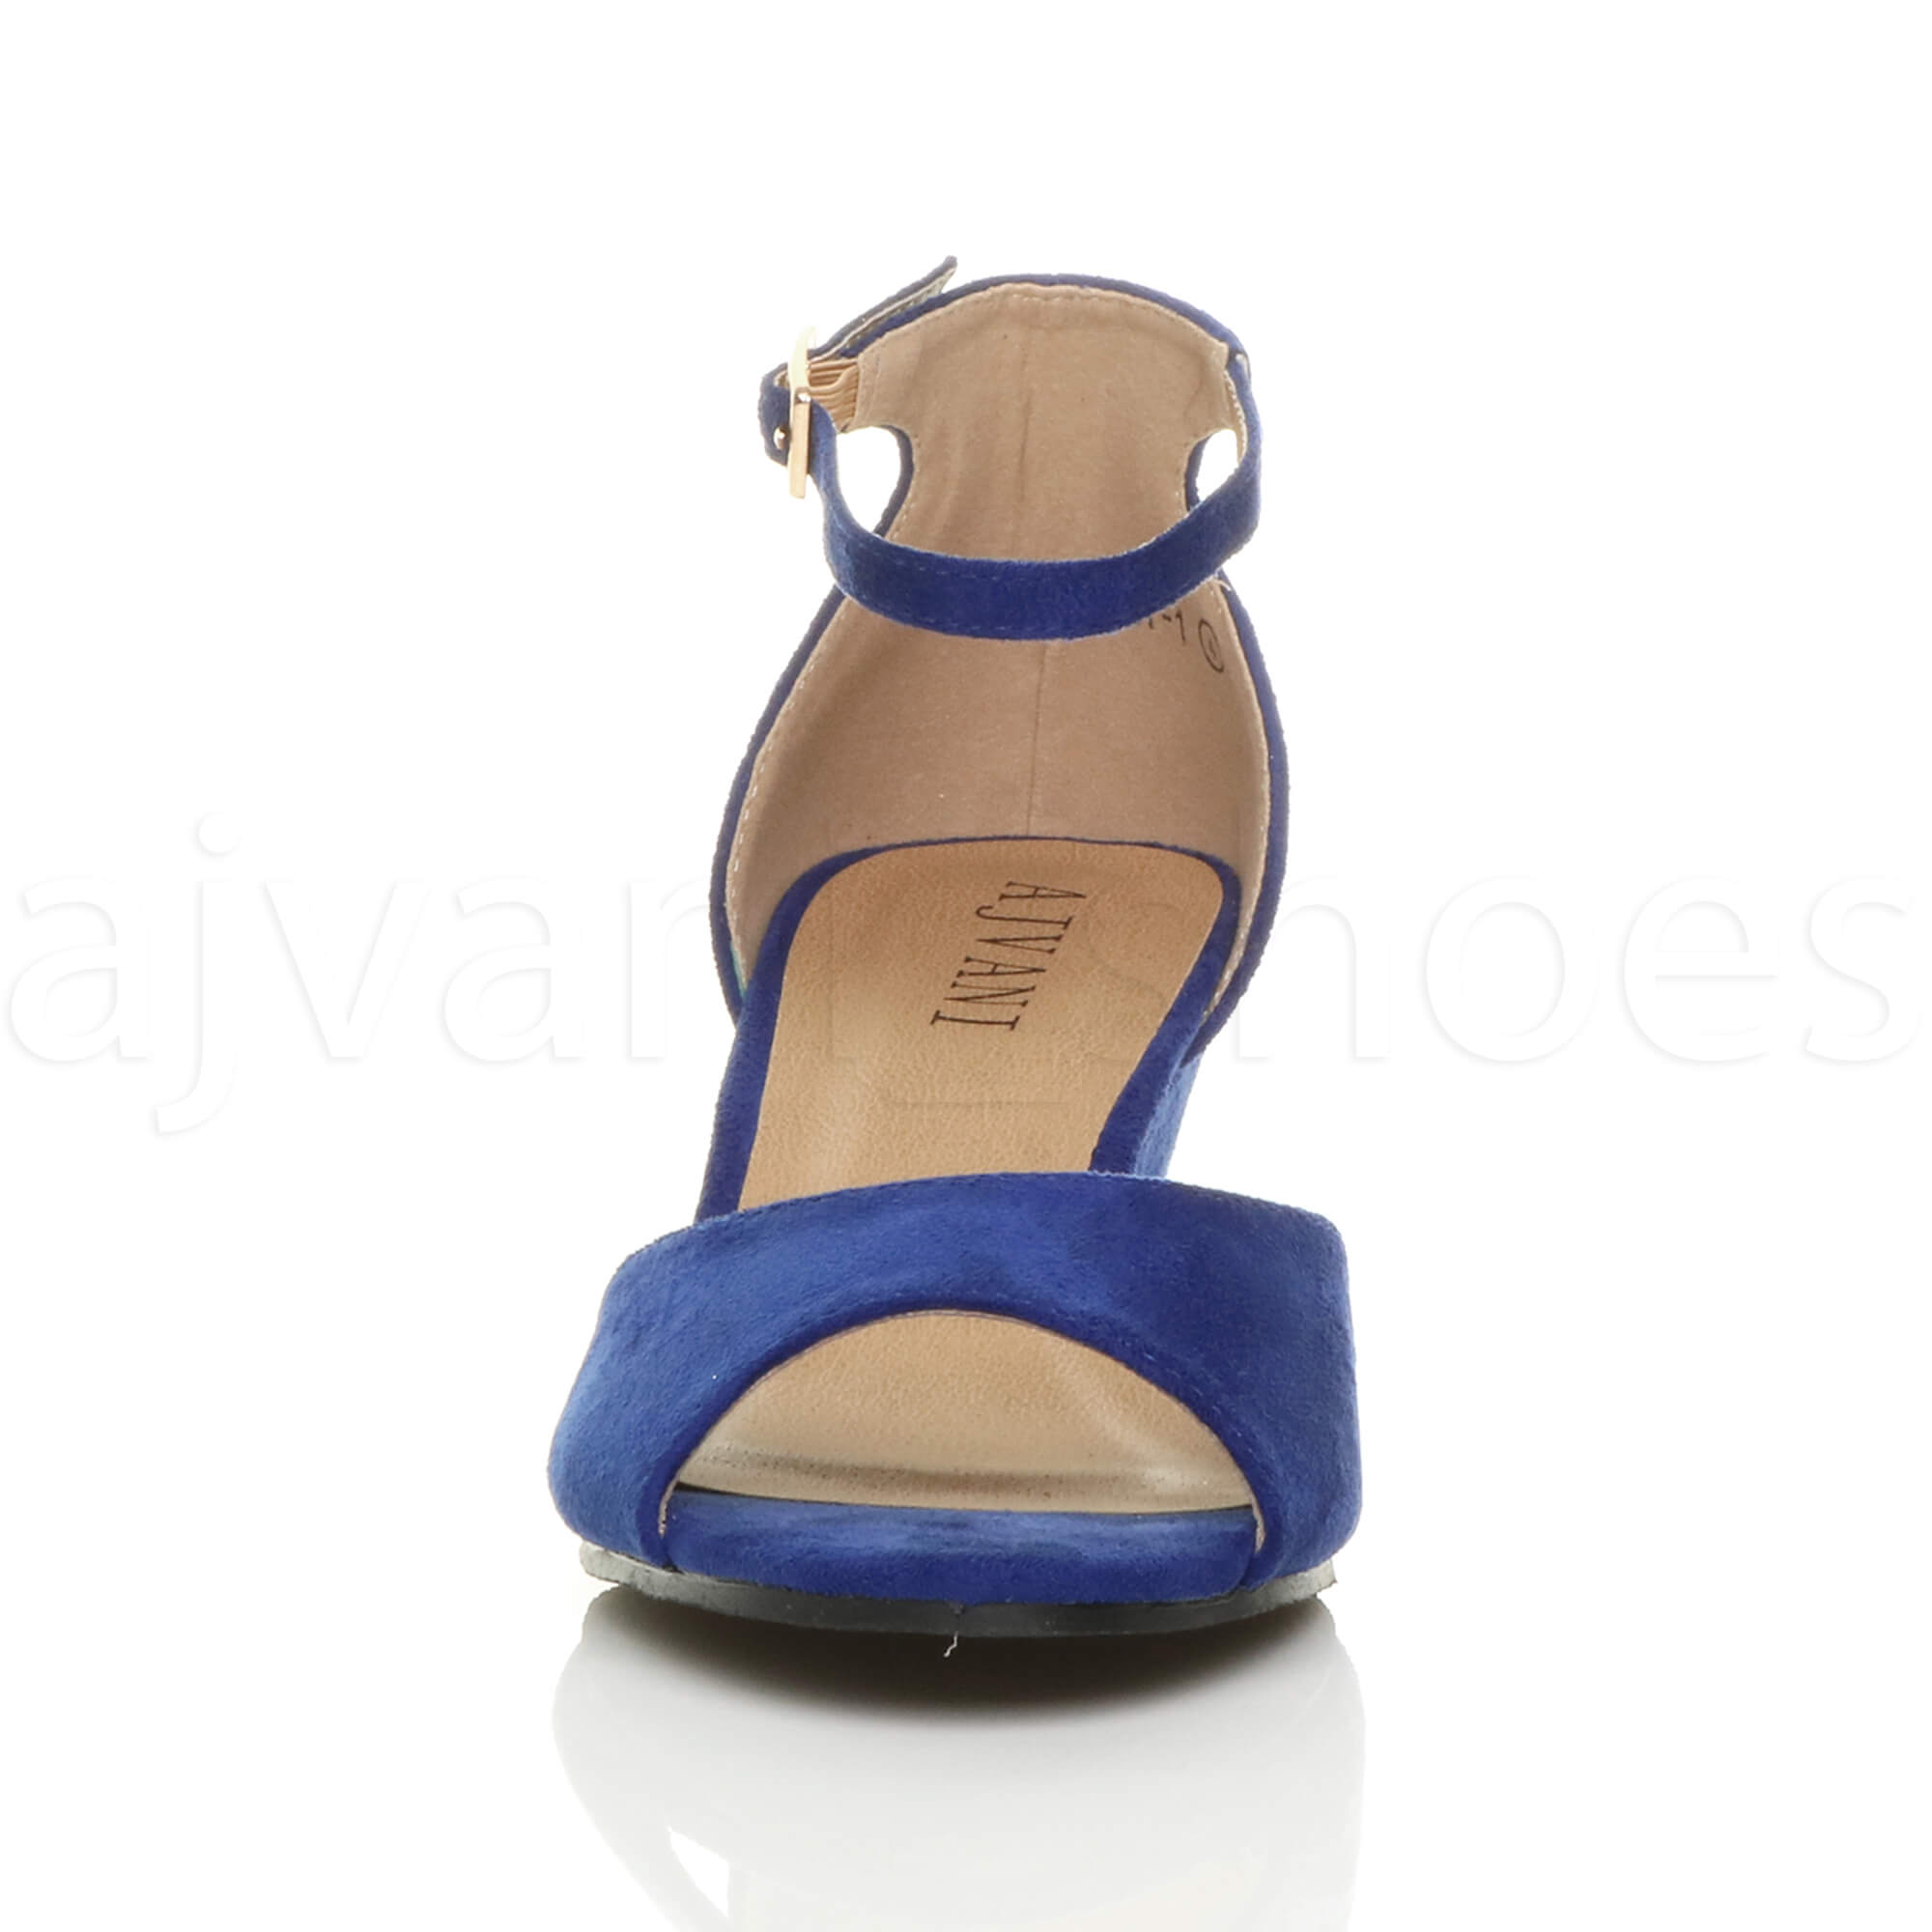 WOMENS-LADIES-LOW-MID-WEDGE-HEEL-ANKLE-STRAP-SMART-CASUAL-EVENING-SANDALS-SIZE thumbnail 31